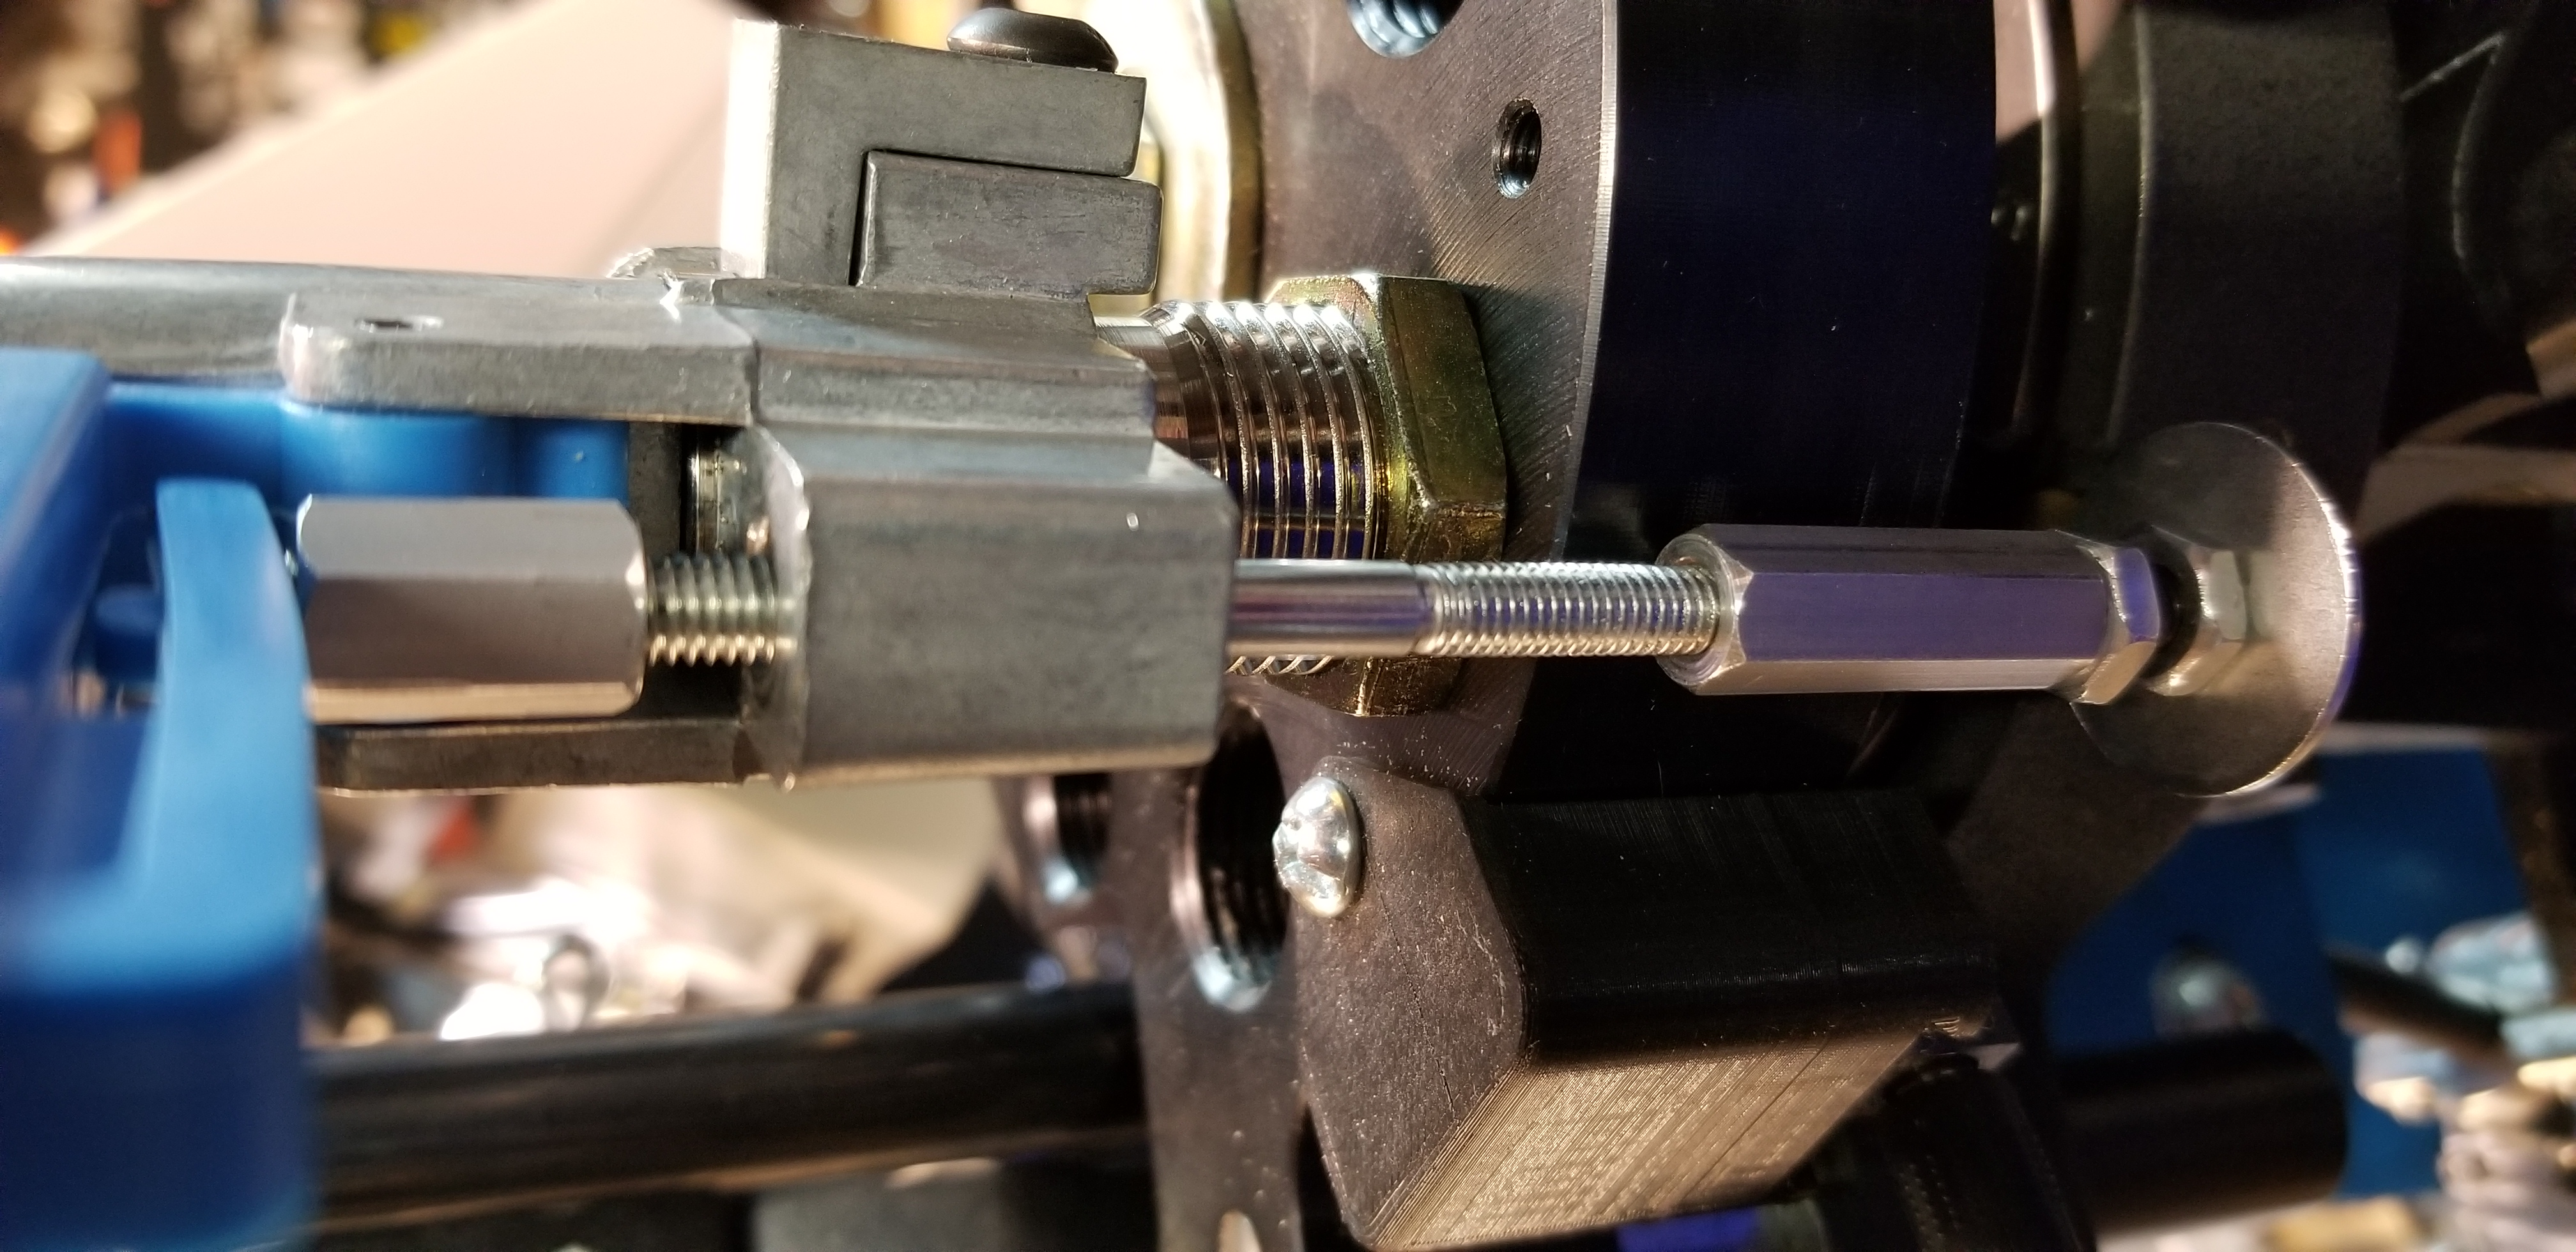 Immortal Arms ™ Powder Check adapter for the CNC toolhead